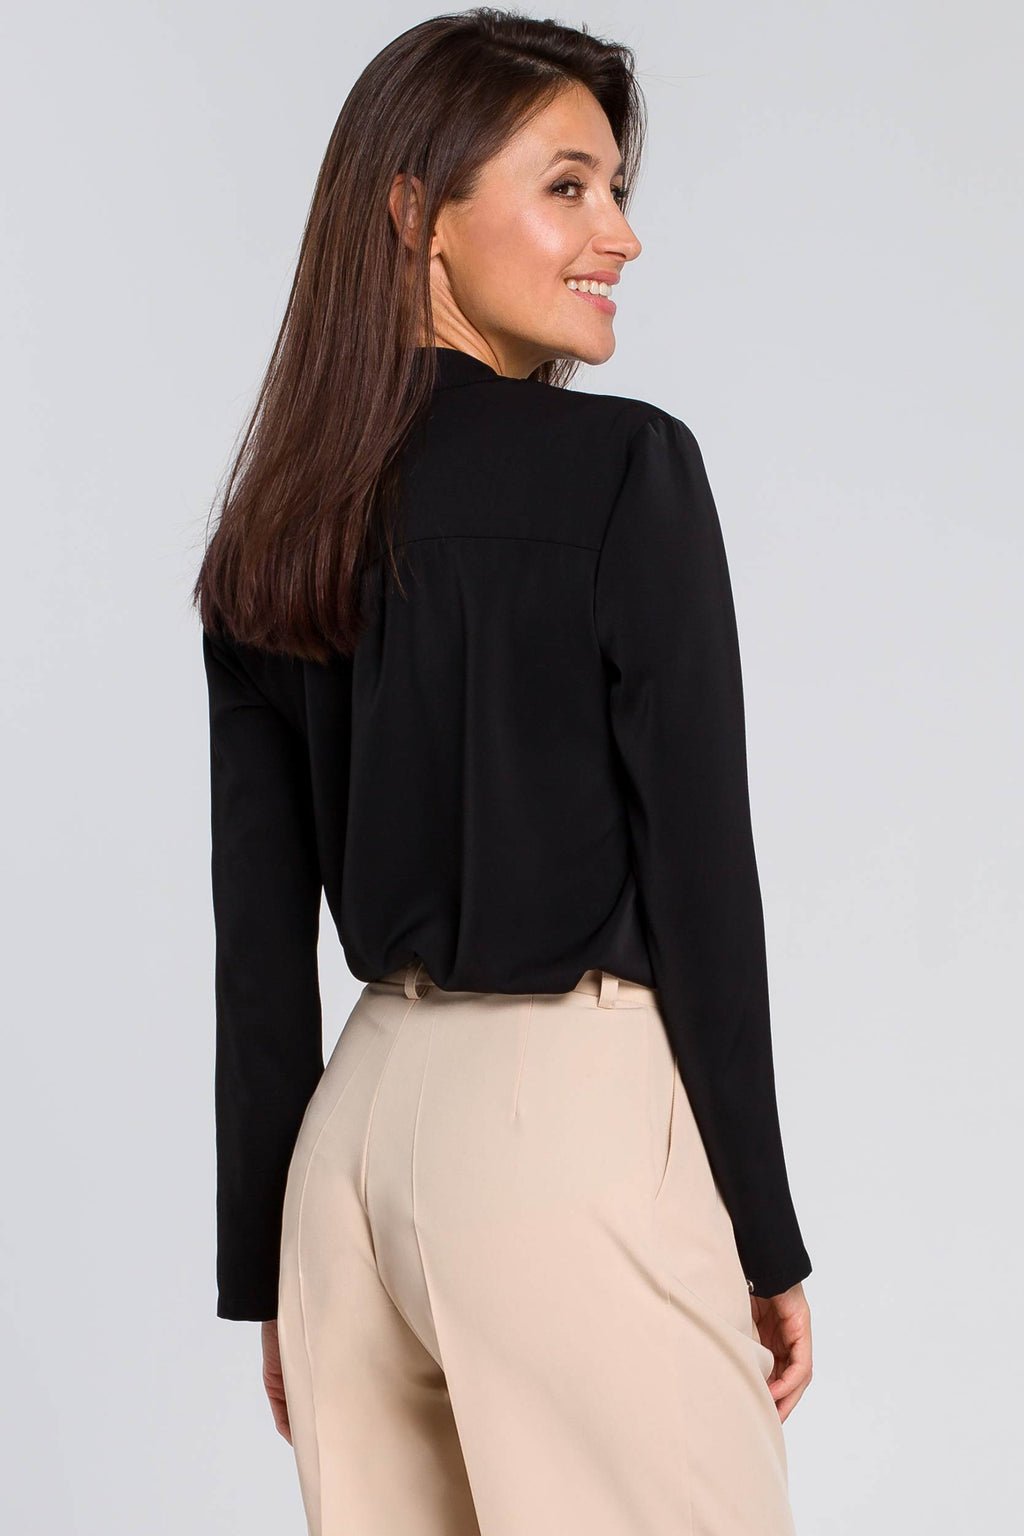 Black Blouse With Utility Flap Pockets - So Chic Boutique